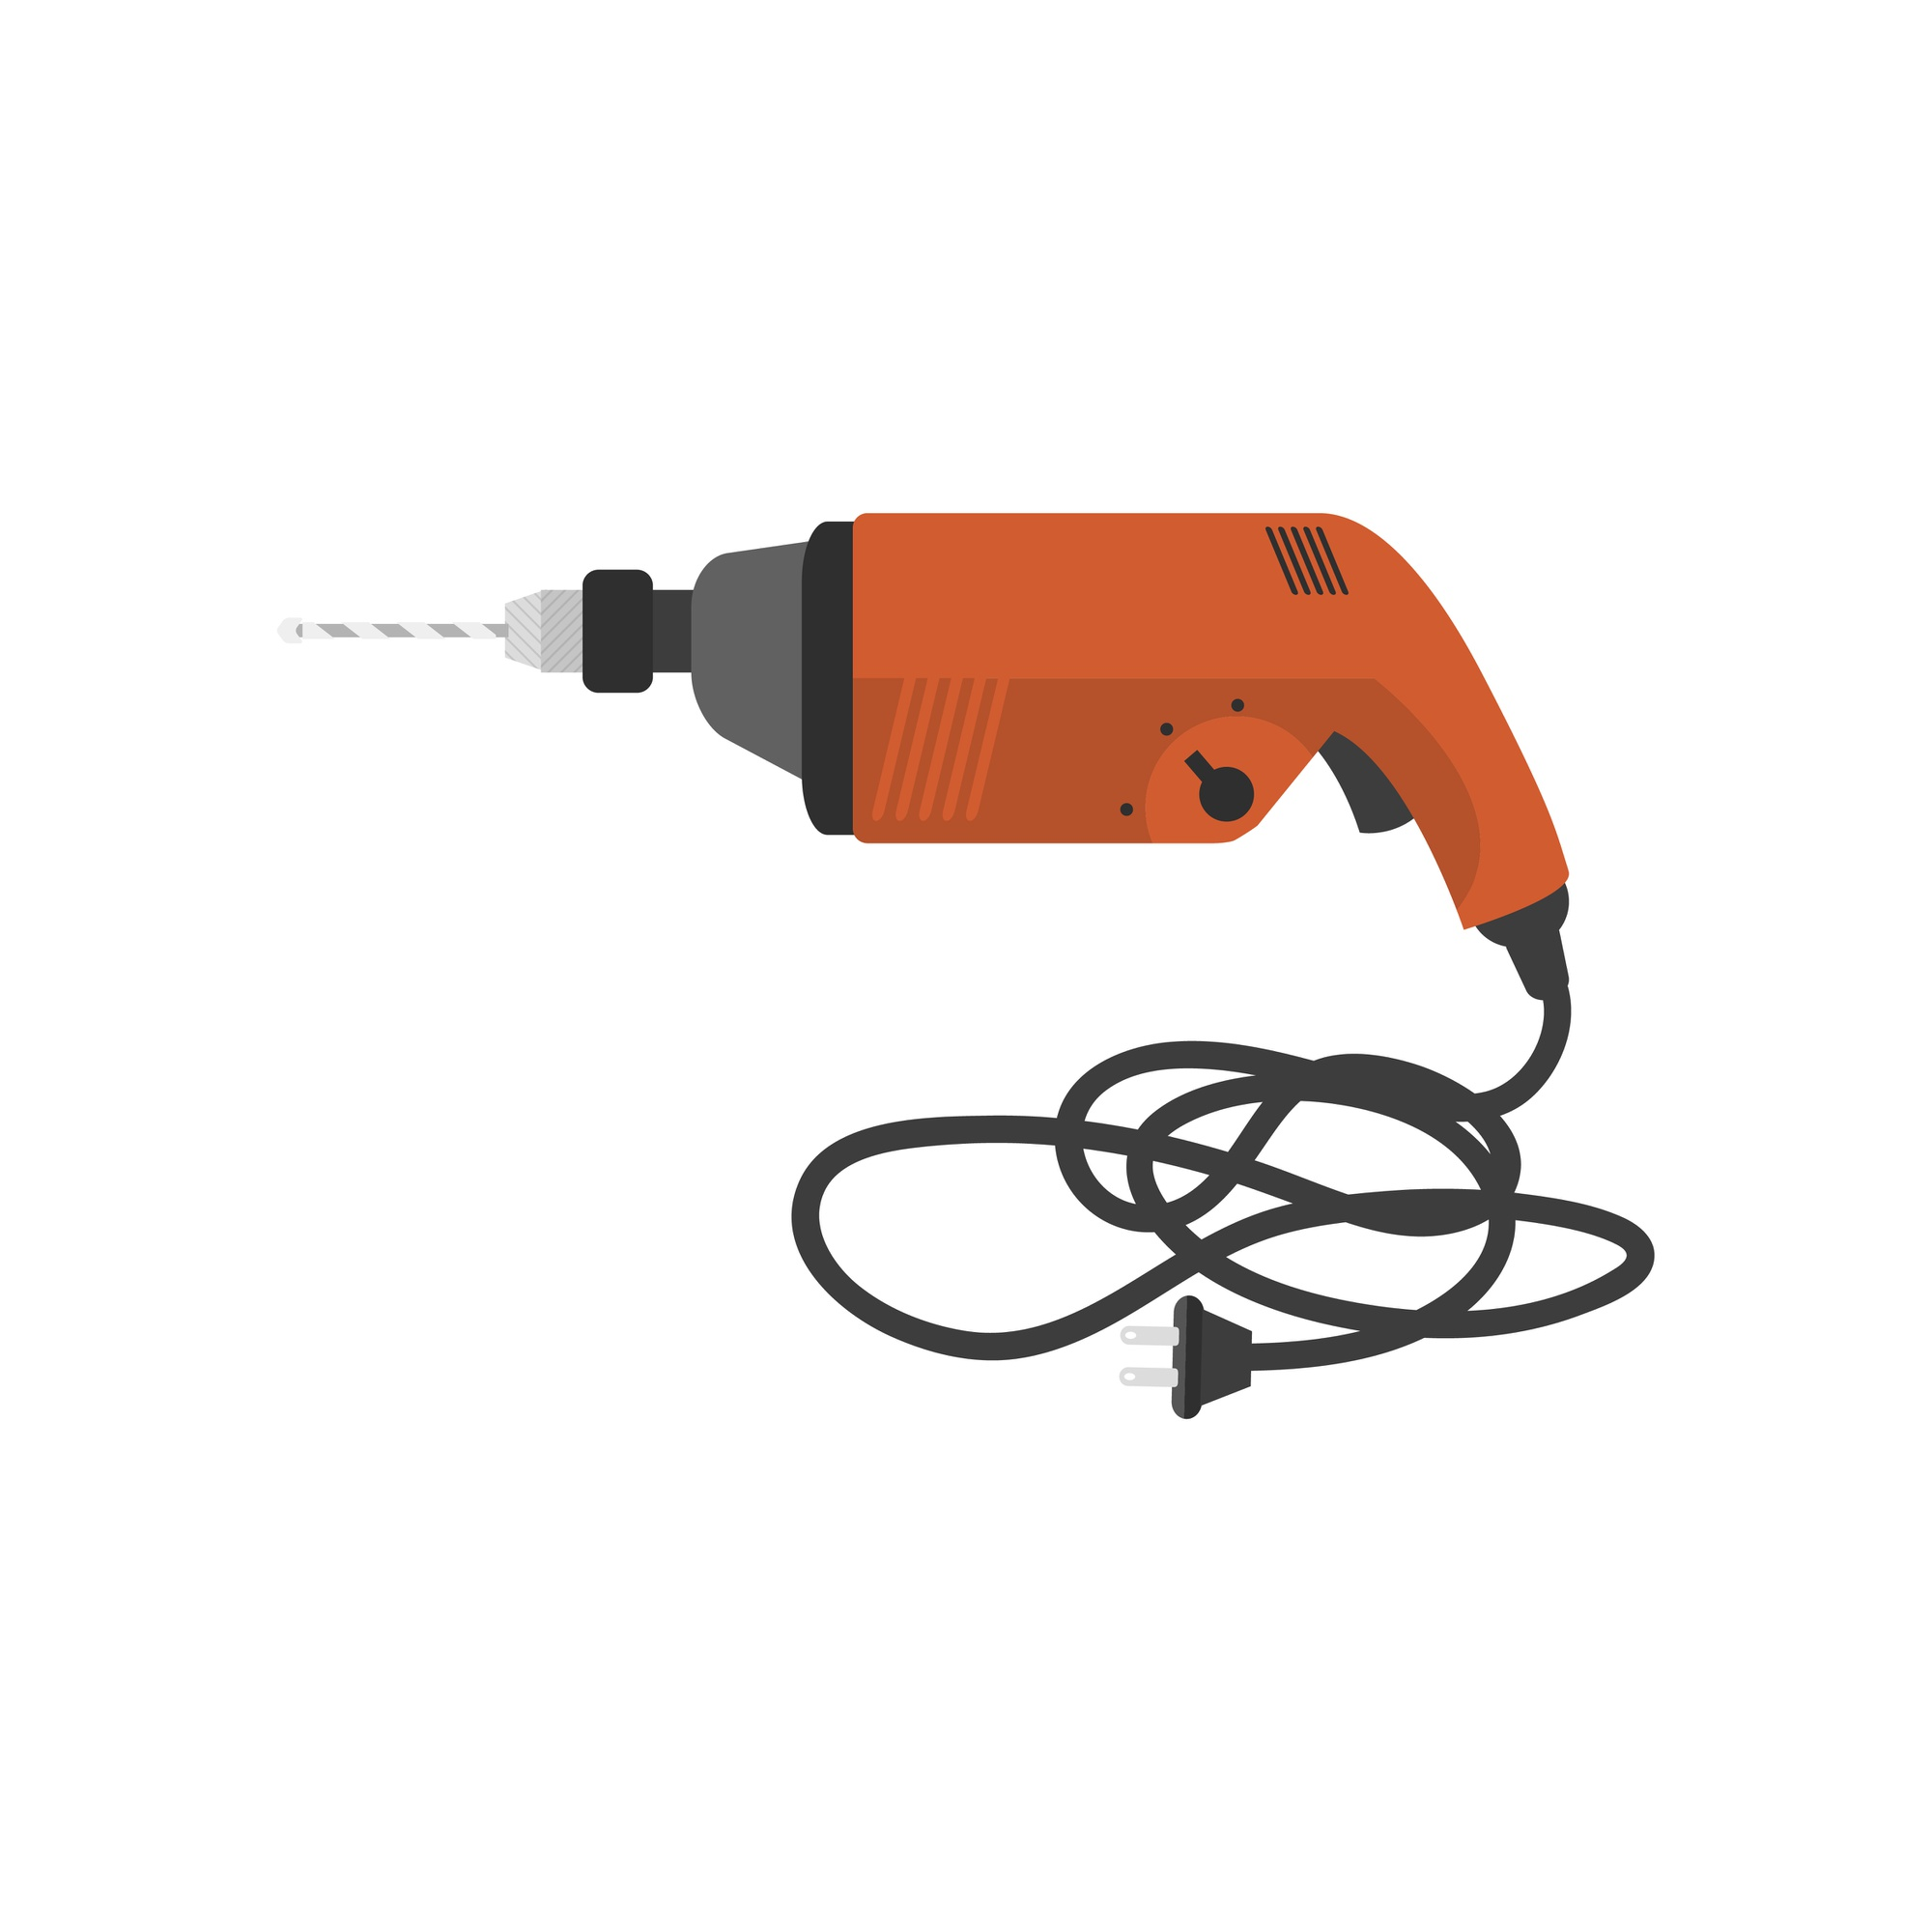 Illustration of electric drill